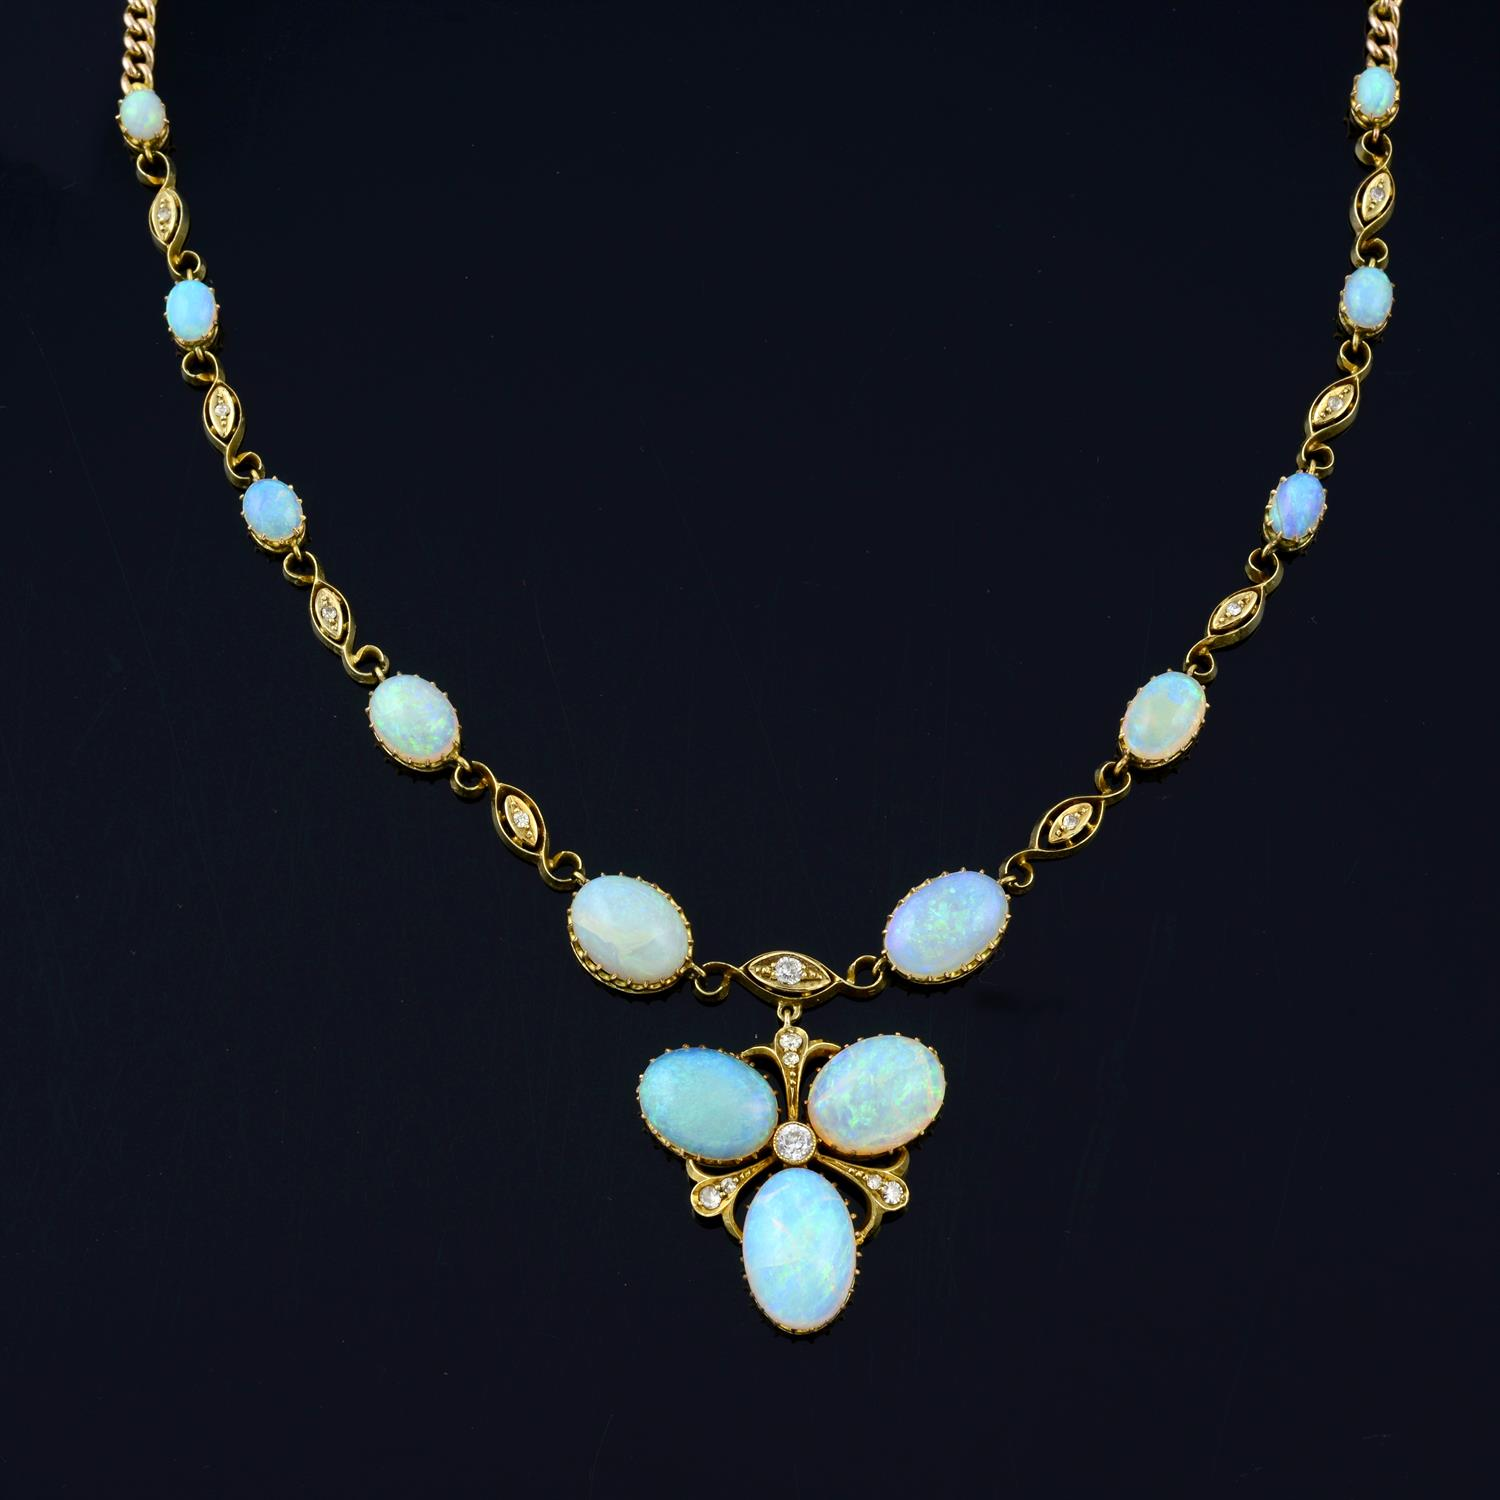 An early 20th century gold opal and diamond necklace, with later back chain. - Image 2 of 5